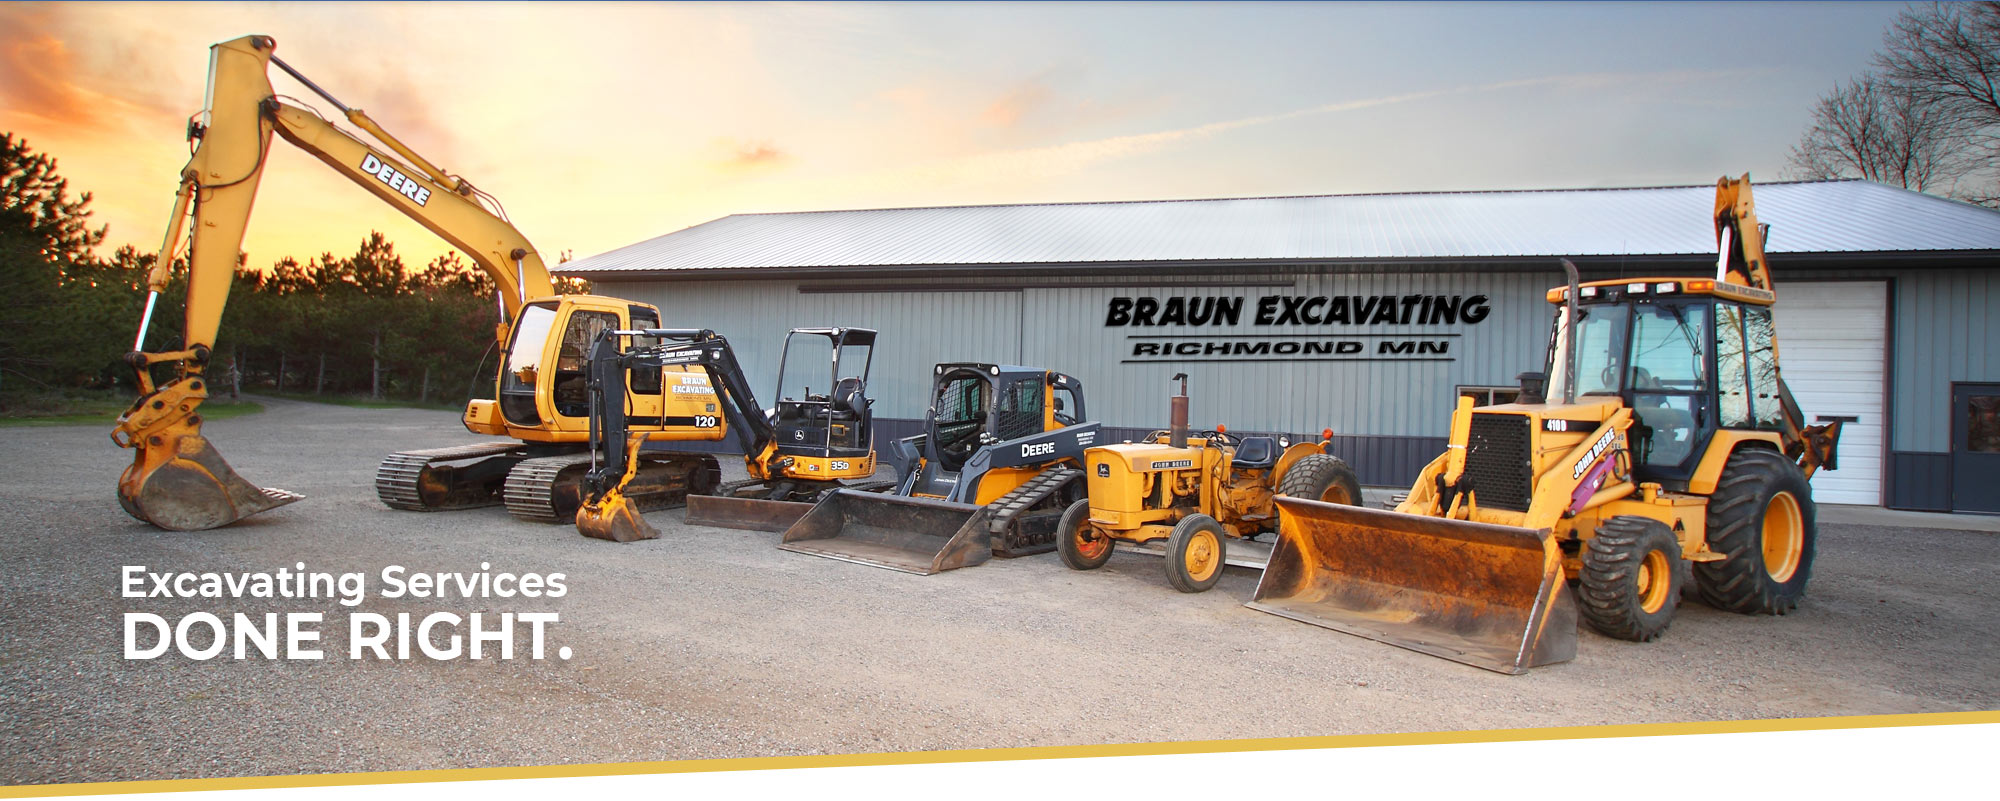 Row of Braun Excavating's earth moving equipment, including a large excavator, mini excavatorm, bobcat, and backhoe